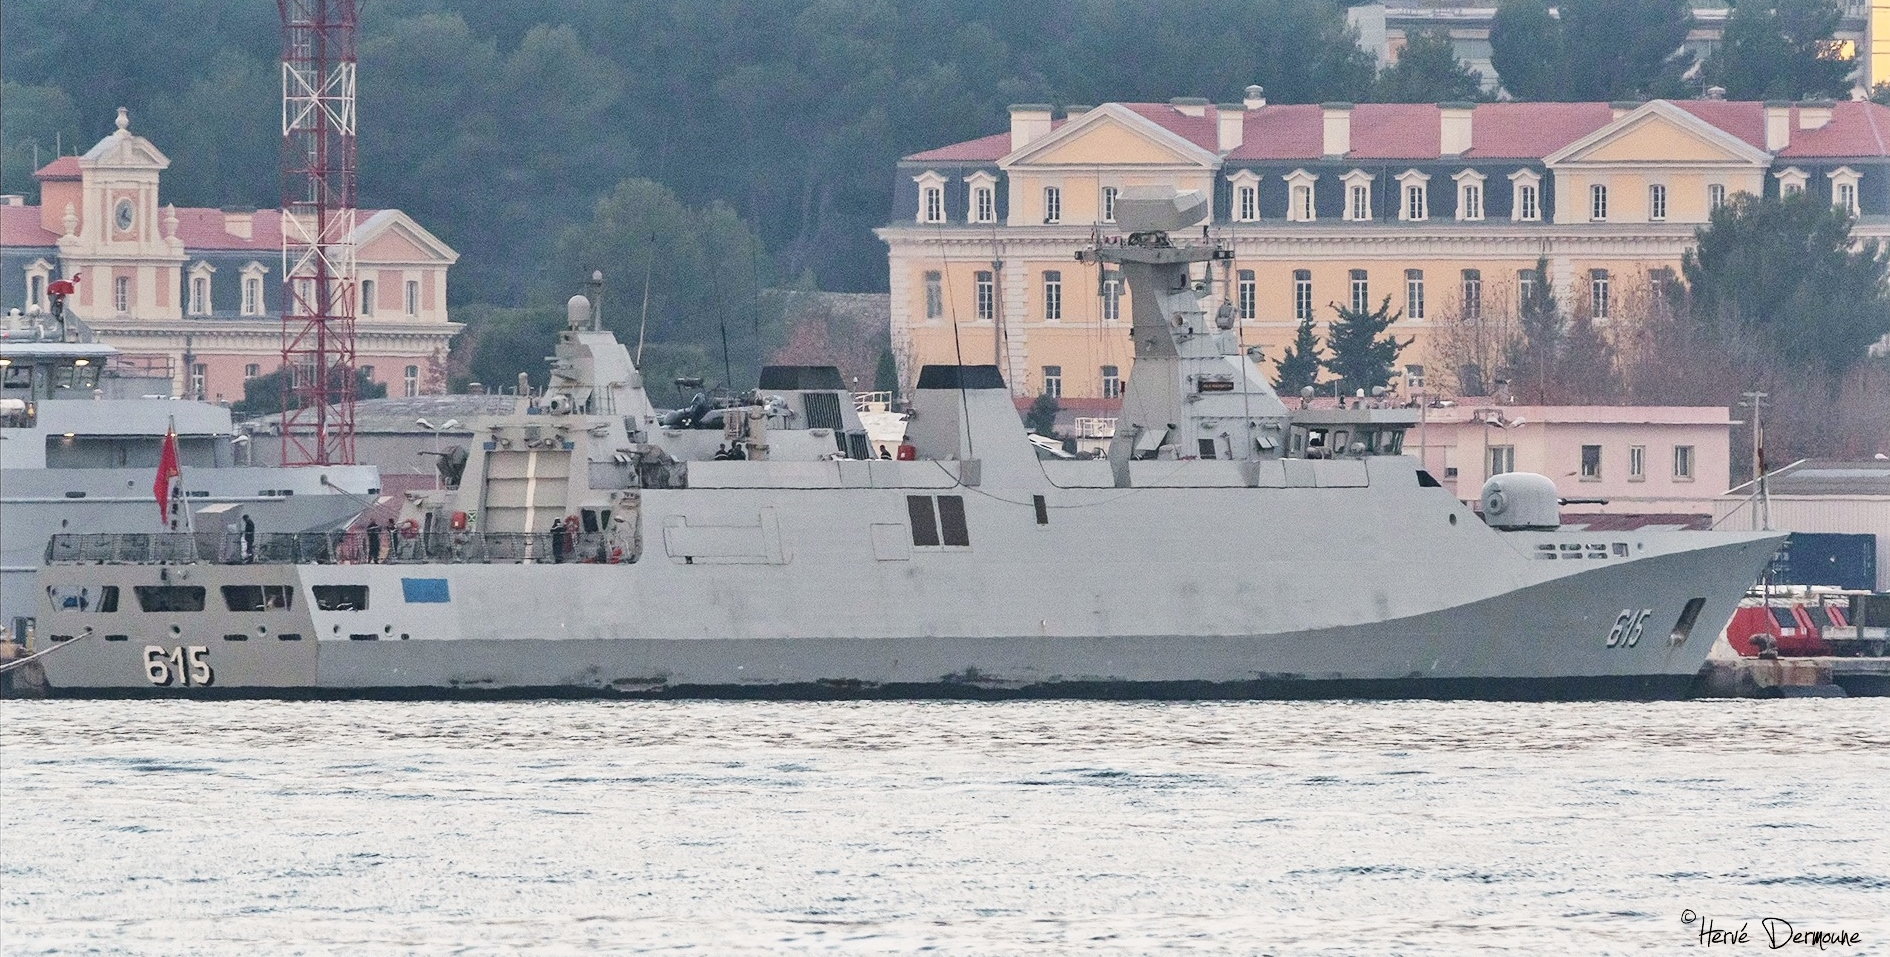 Royal Moroccan Navy Sigma class frigates / Frégates marocaines multimissions Sigma - Page 25 44455264510_f468736ee8_o